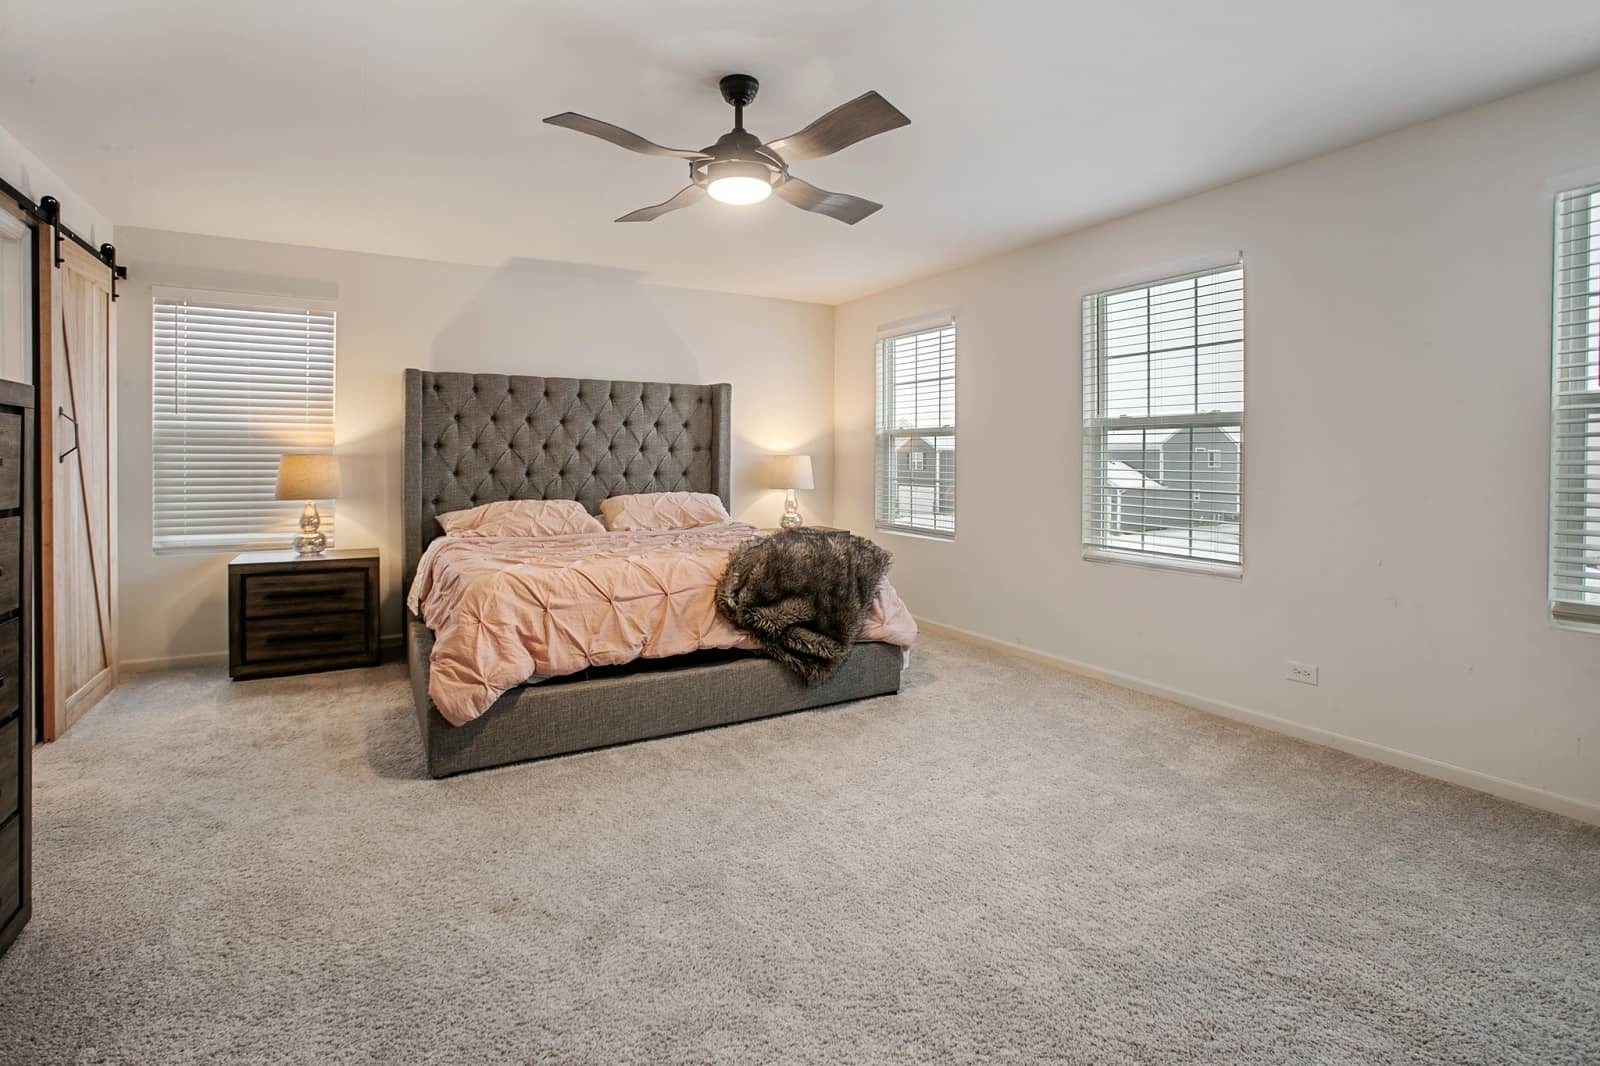 Real Estate Photography in Joliet - IL - USA - Bedroom View